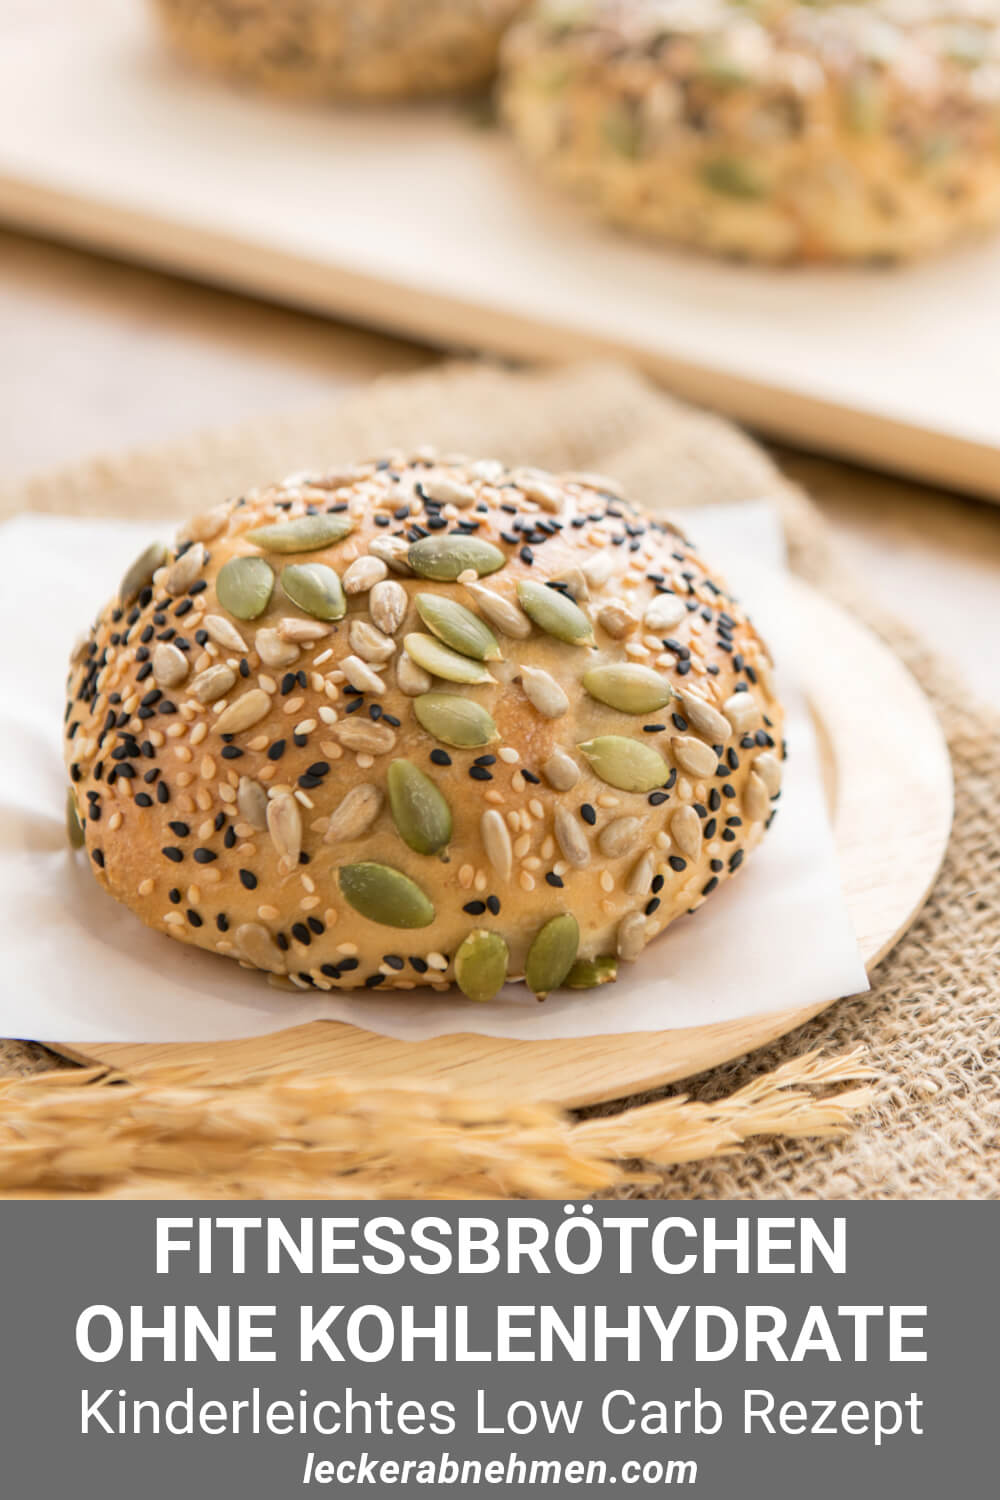 Low Carb Brötchen ohne Kohlenhydrate